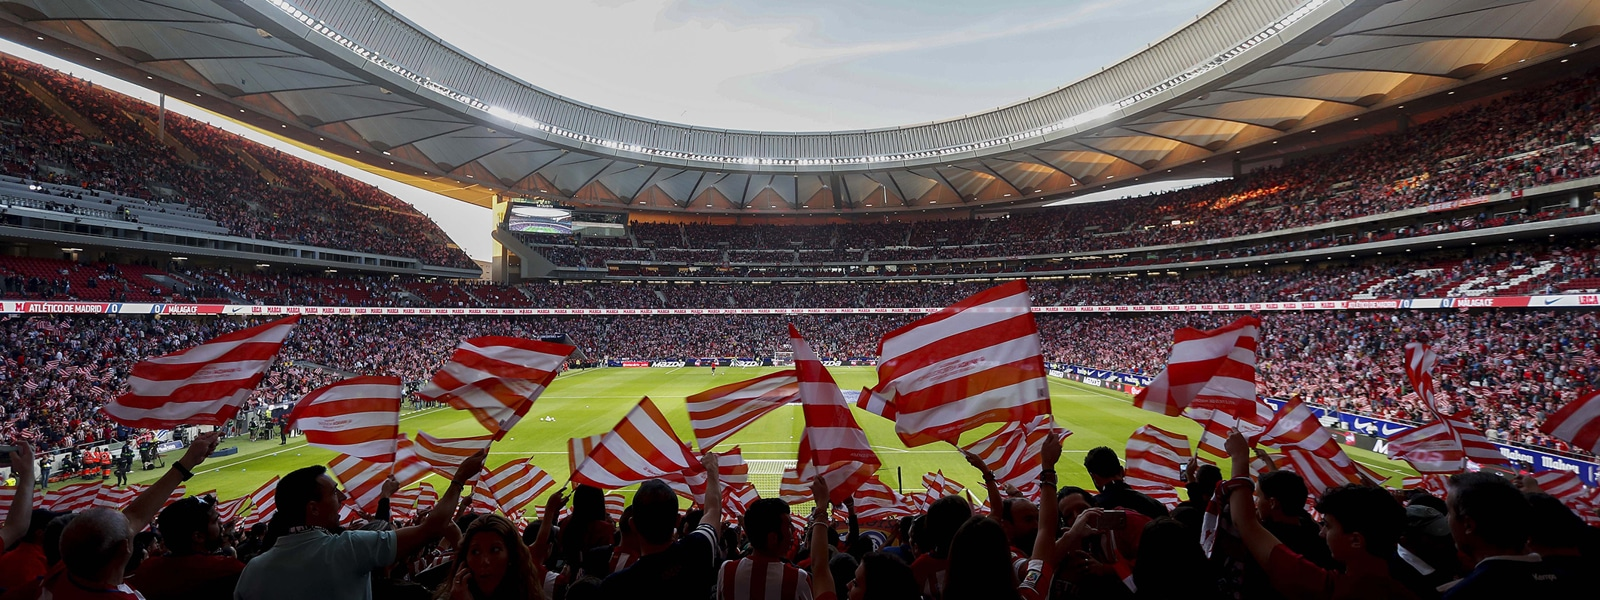 Fans waving flags in a packed Atletico Madrid stadium in Spain